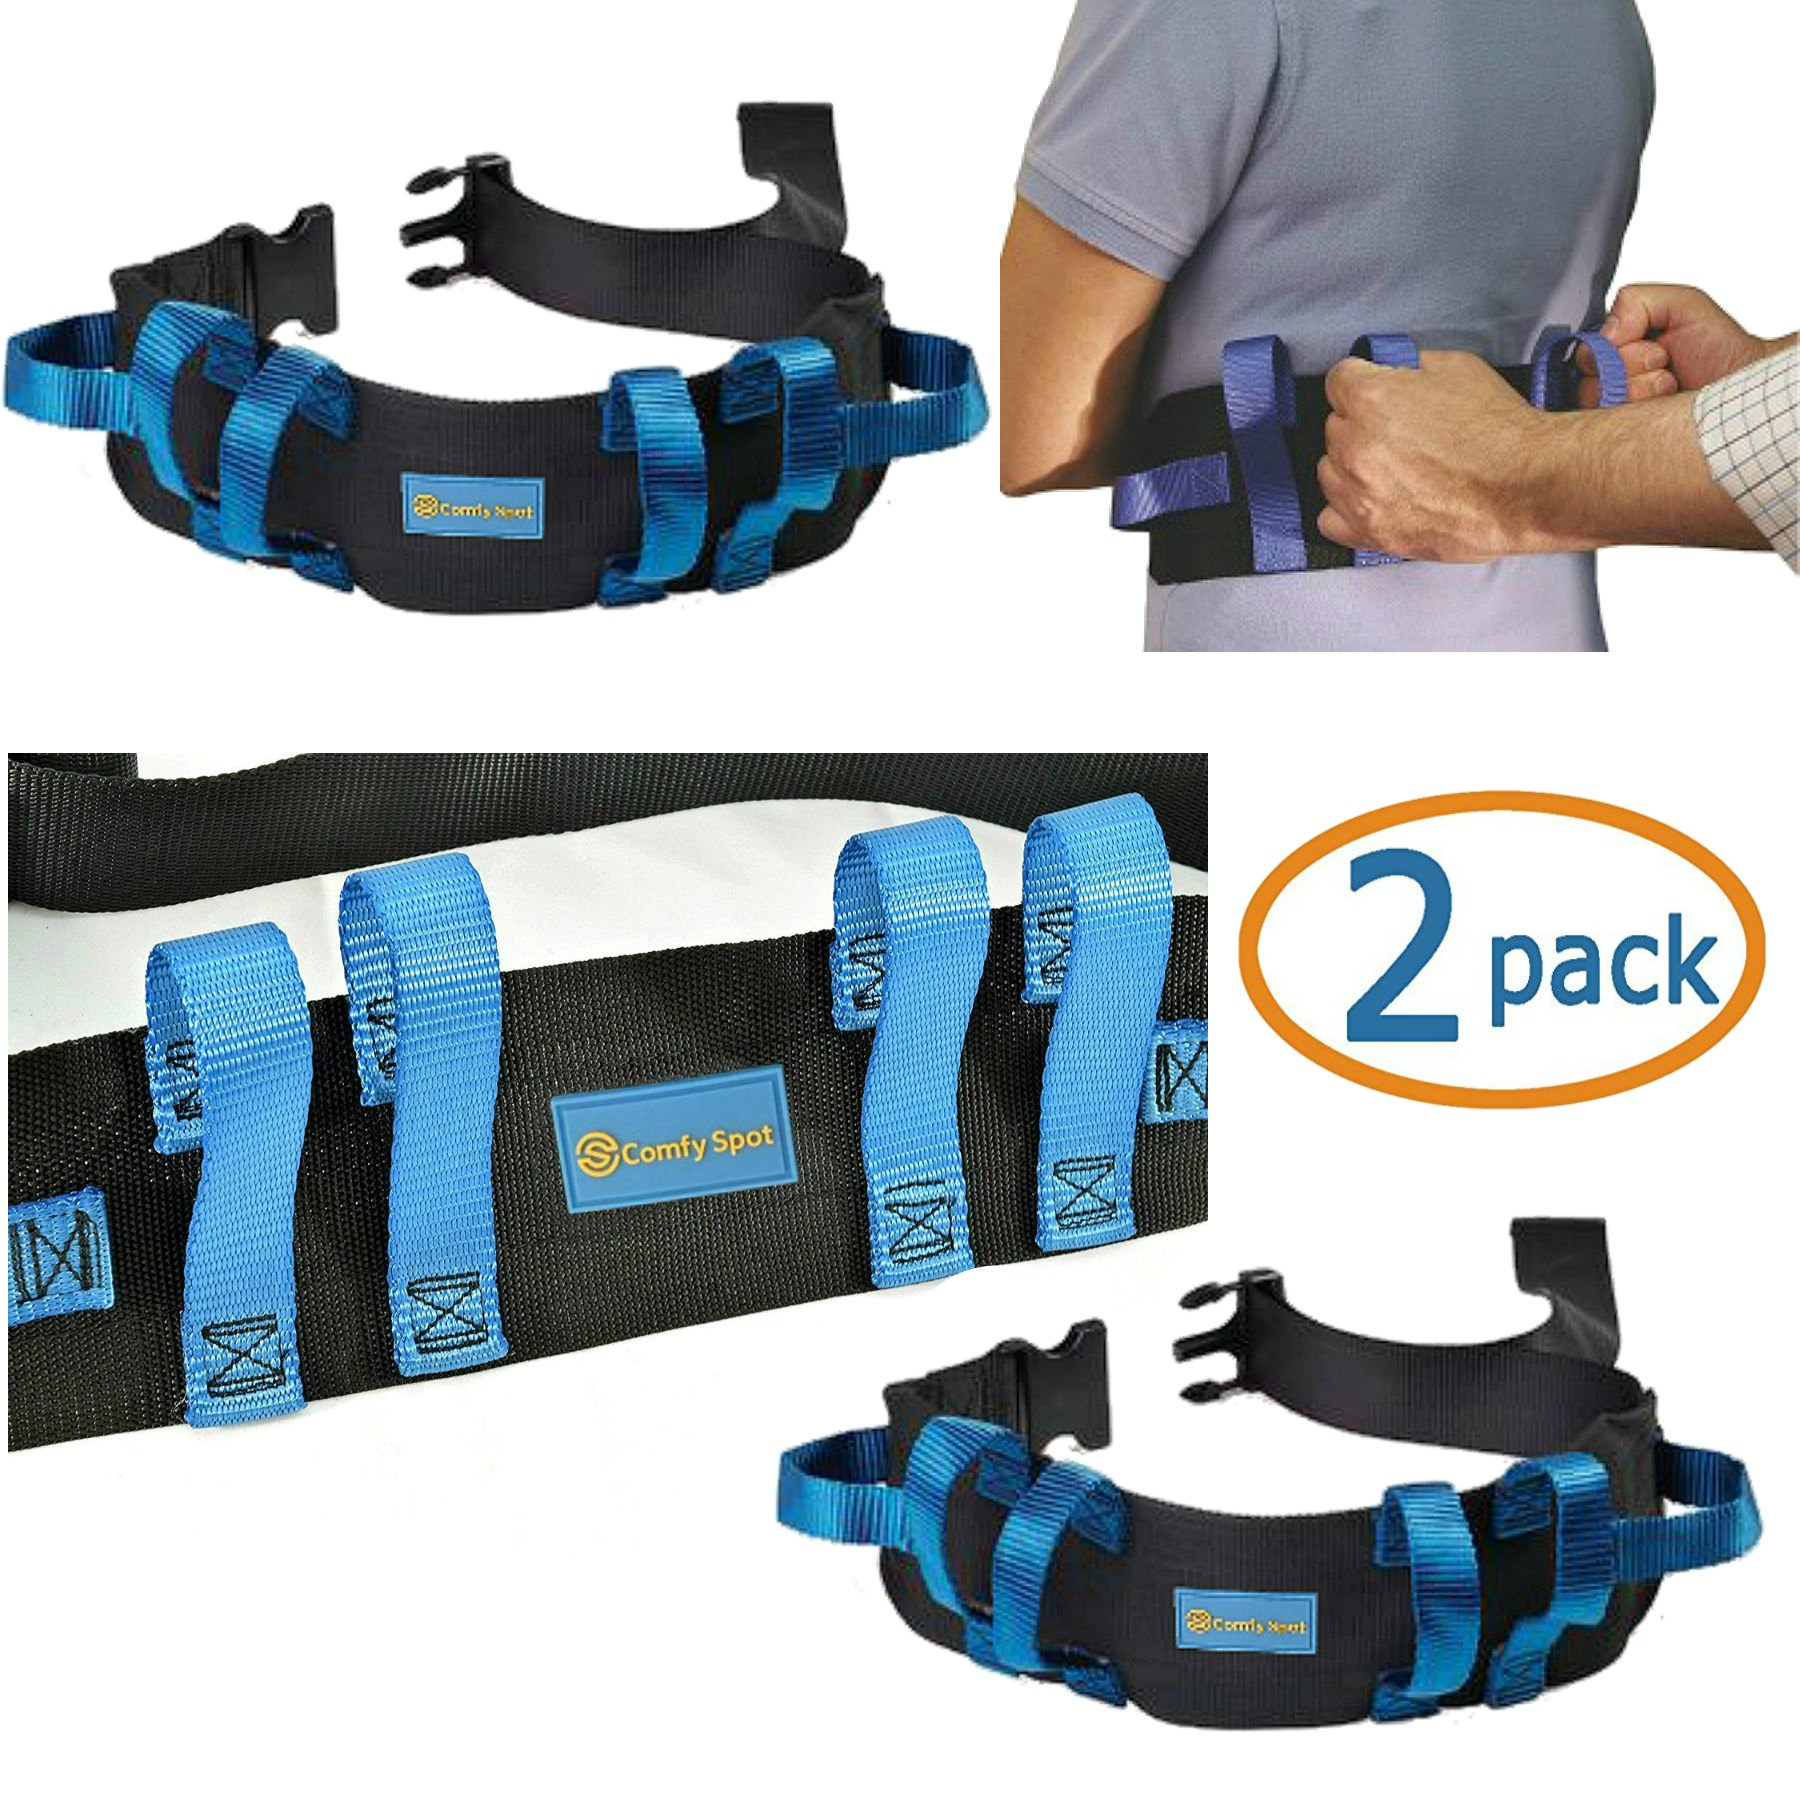 Gait Belt Transfer Belt 2 Pack with Quick Release Lifts Medical Safety Belts for Elderly to Lift and Transfer Physical Therapy Belt Straps and Elderly Care Lifts by Kitchen Krush